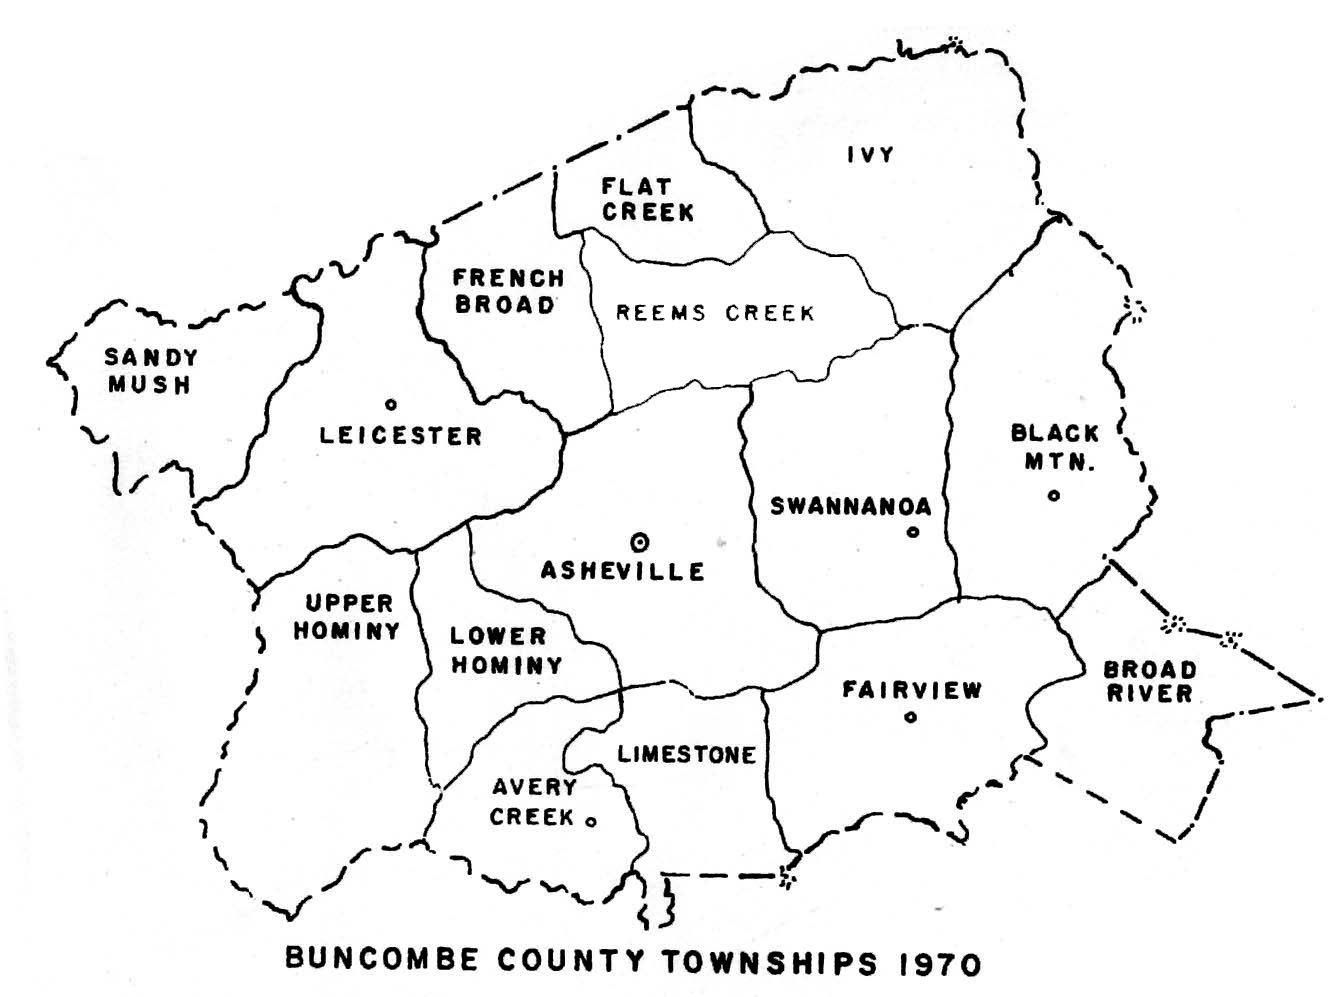 Buncombe County Townships